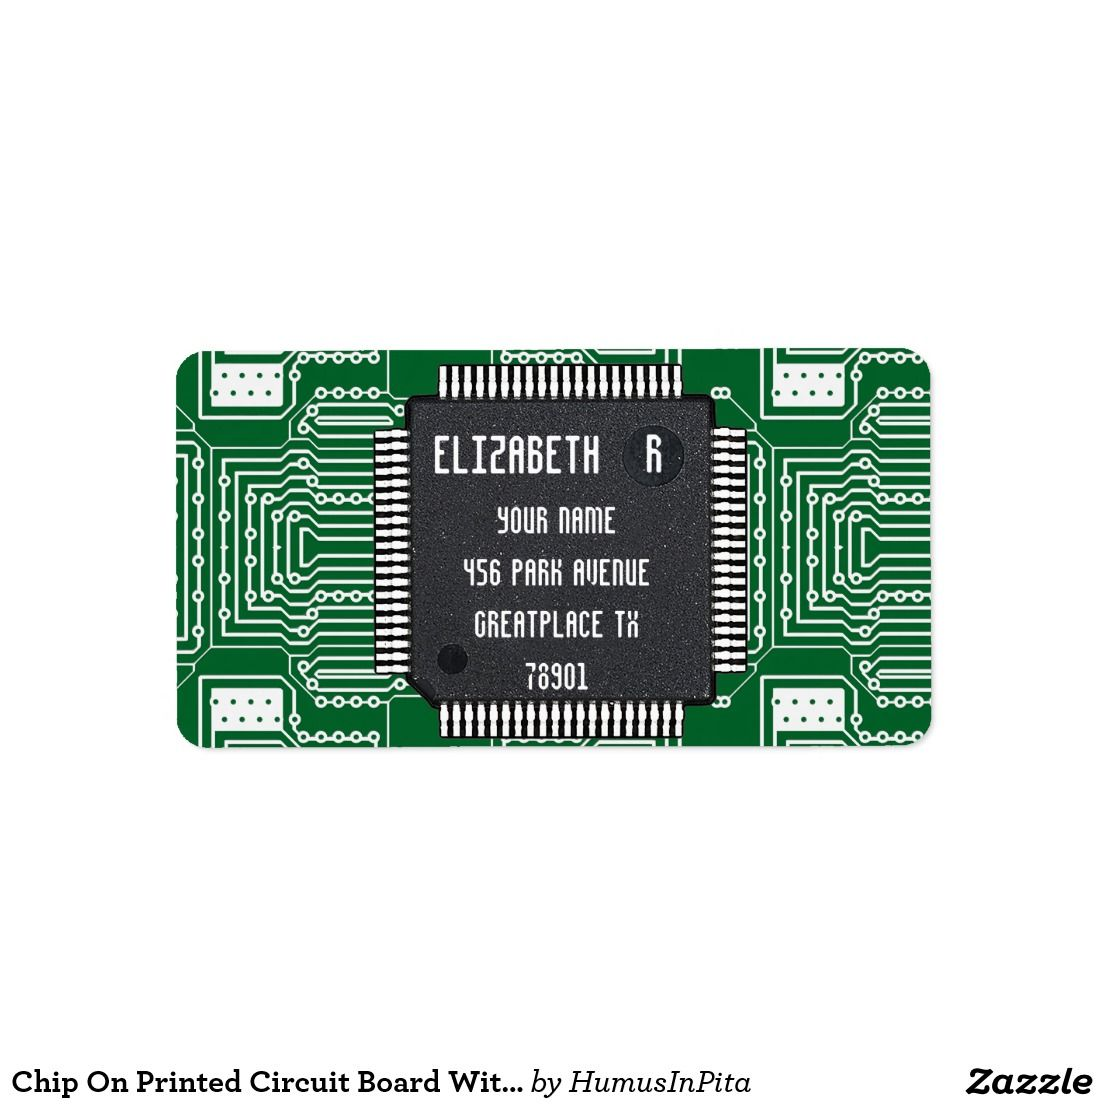 Chip On Printed Circuit Board With Your Name Label Zazzle Com Circuit Board Printed Circuit Board Name Labels